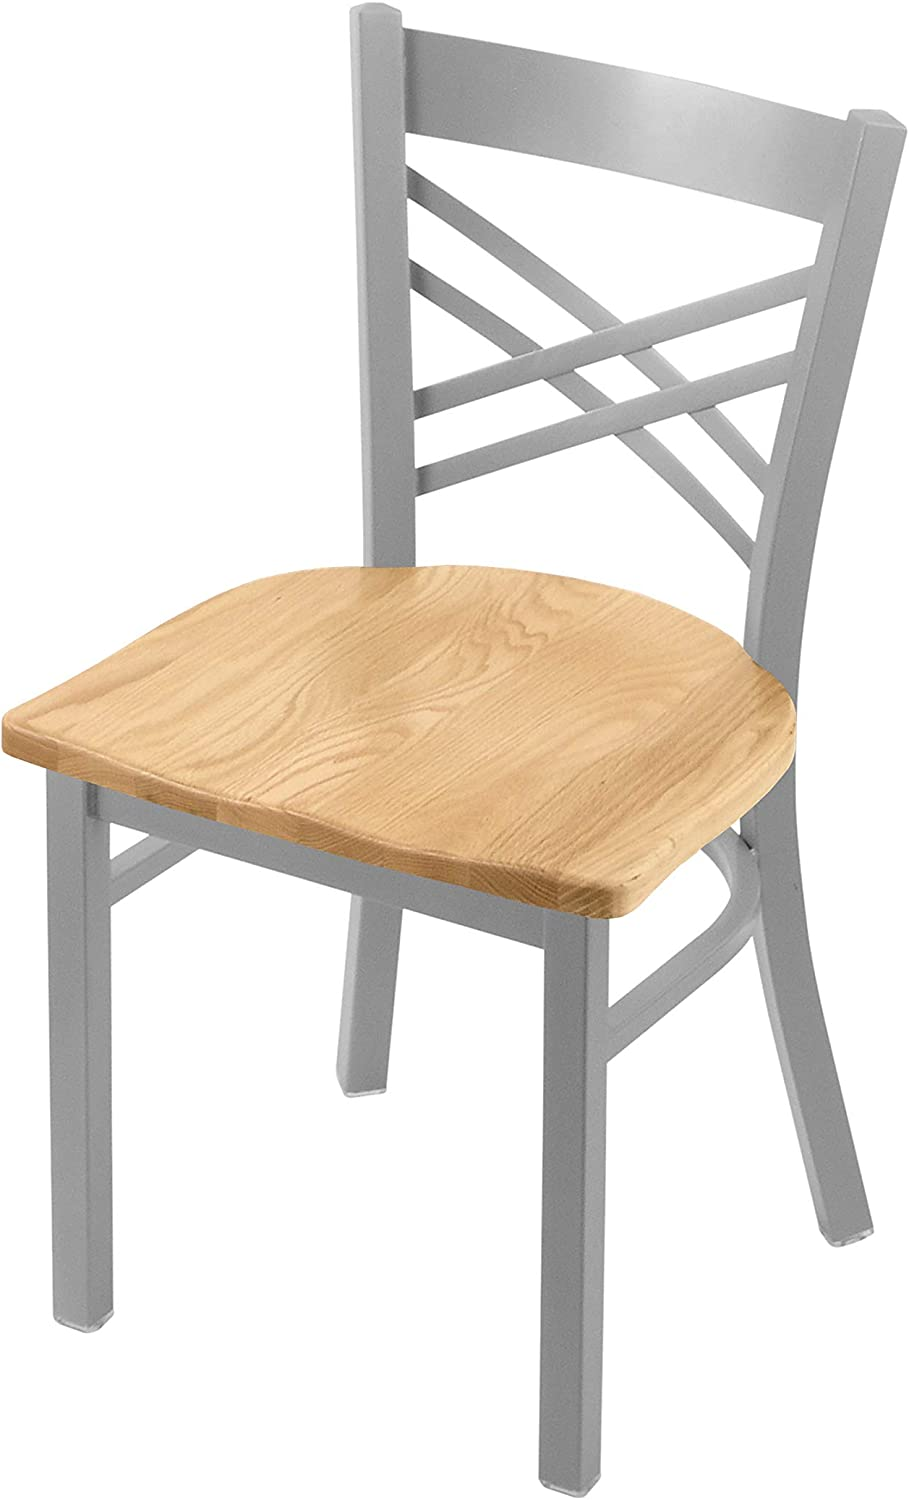 Holland Bar Stool 62018ANNatOak 620 Catalina Chair, Natural Oak